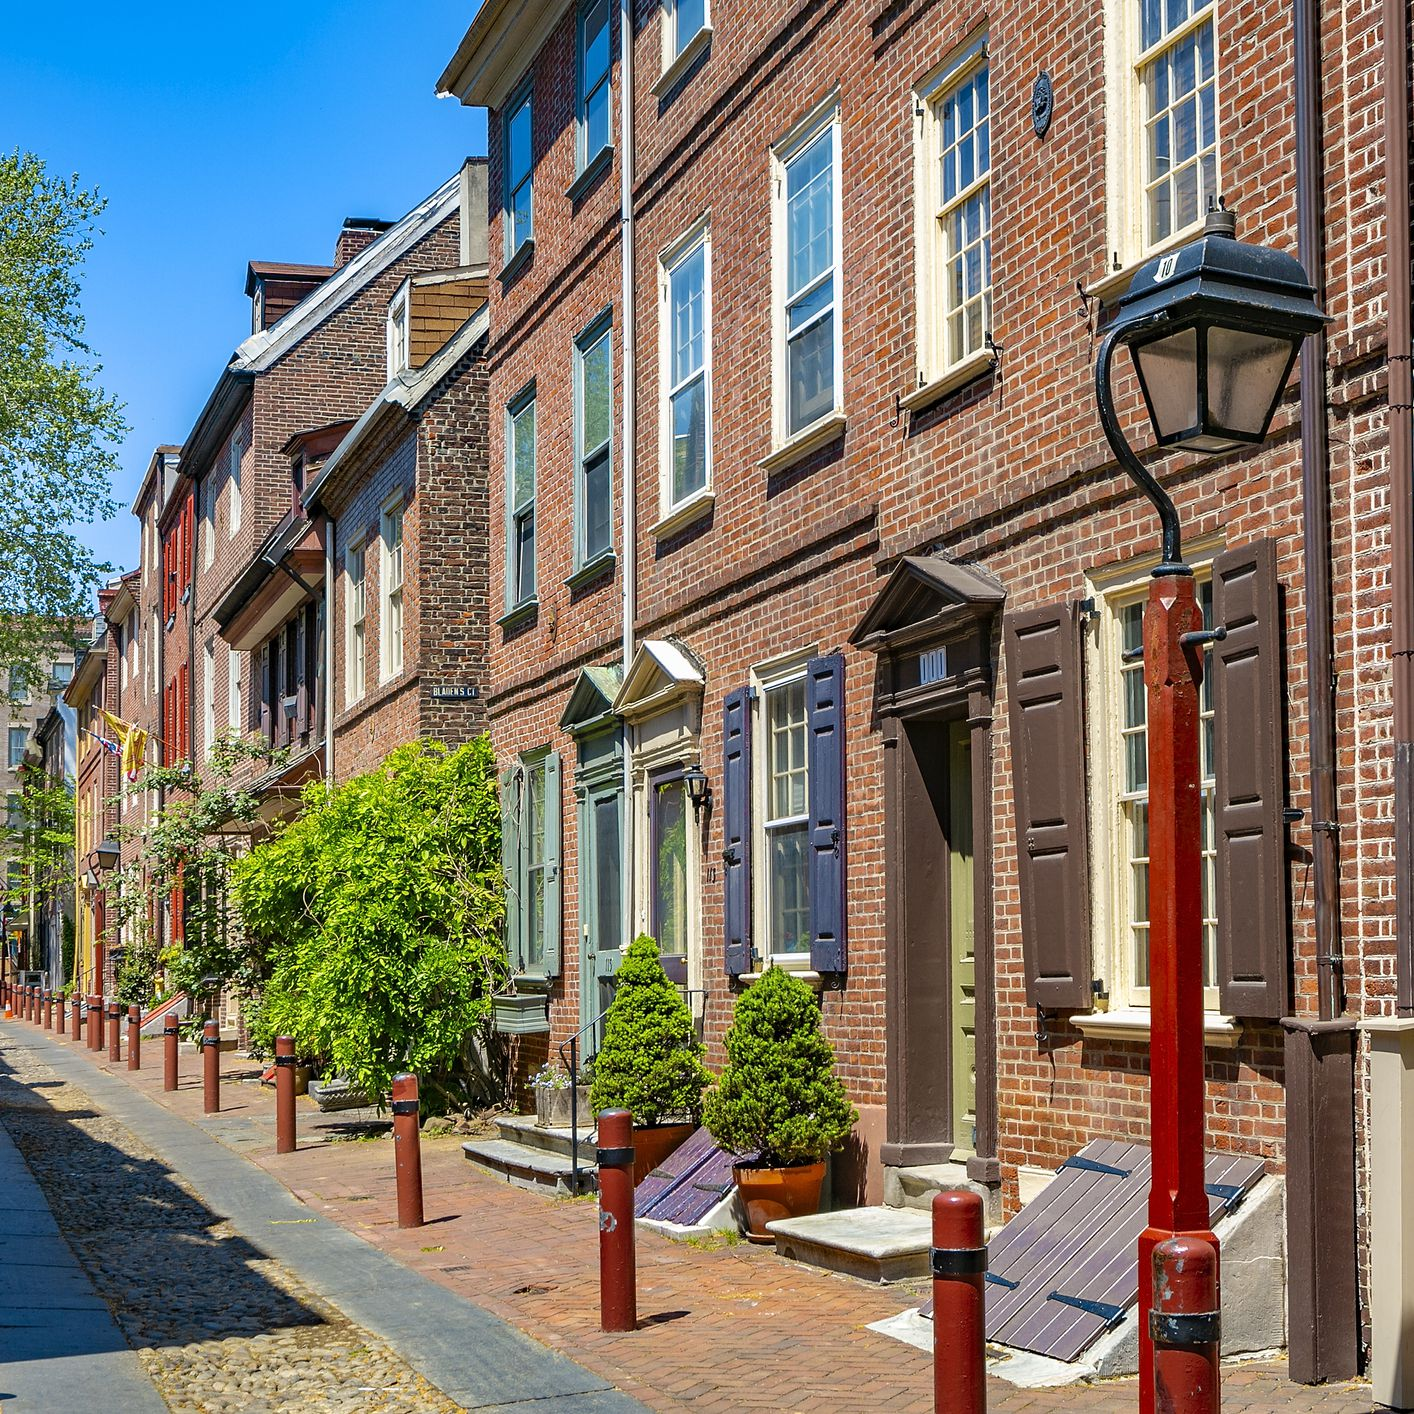 The 9 Best Philadelphia Tours of 2019